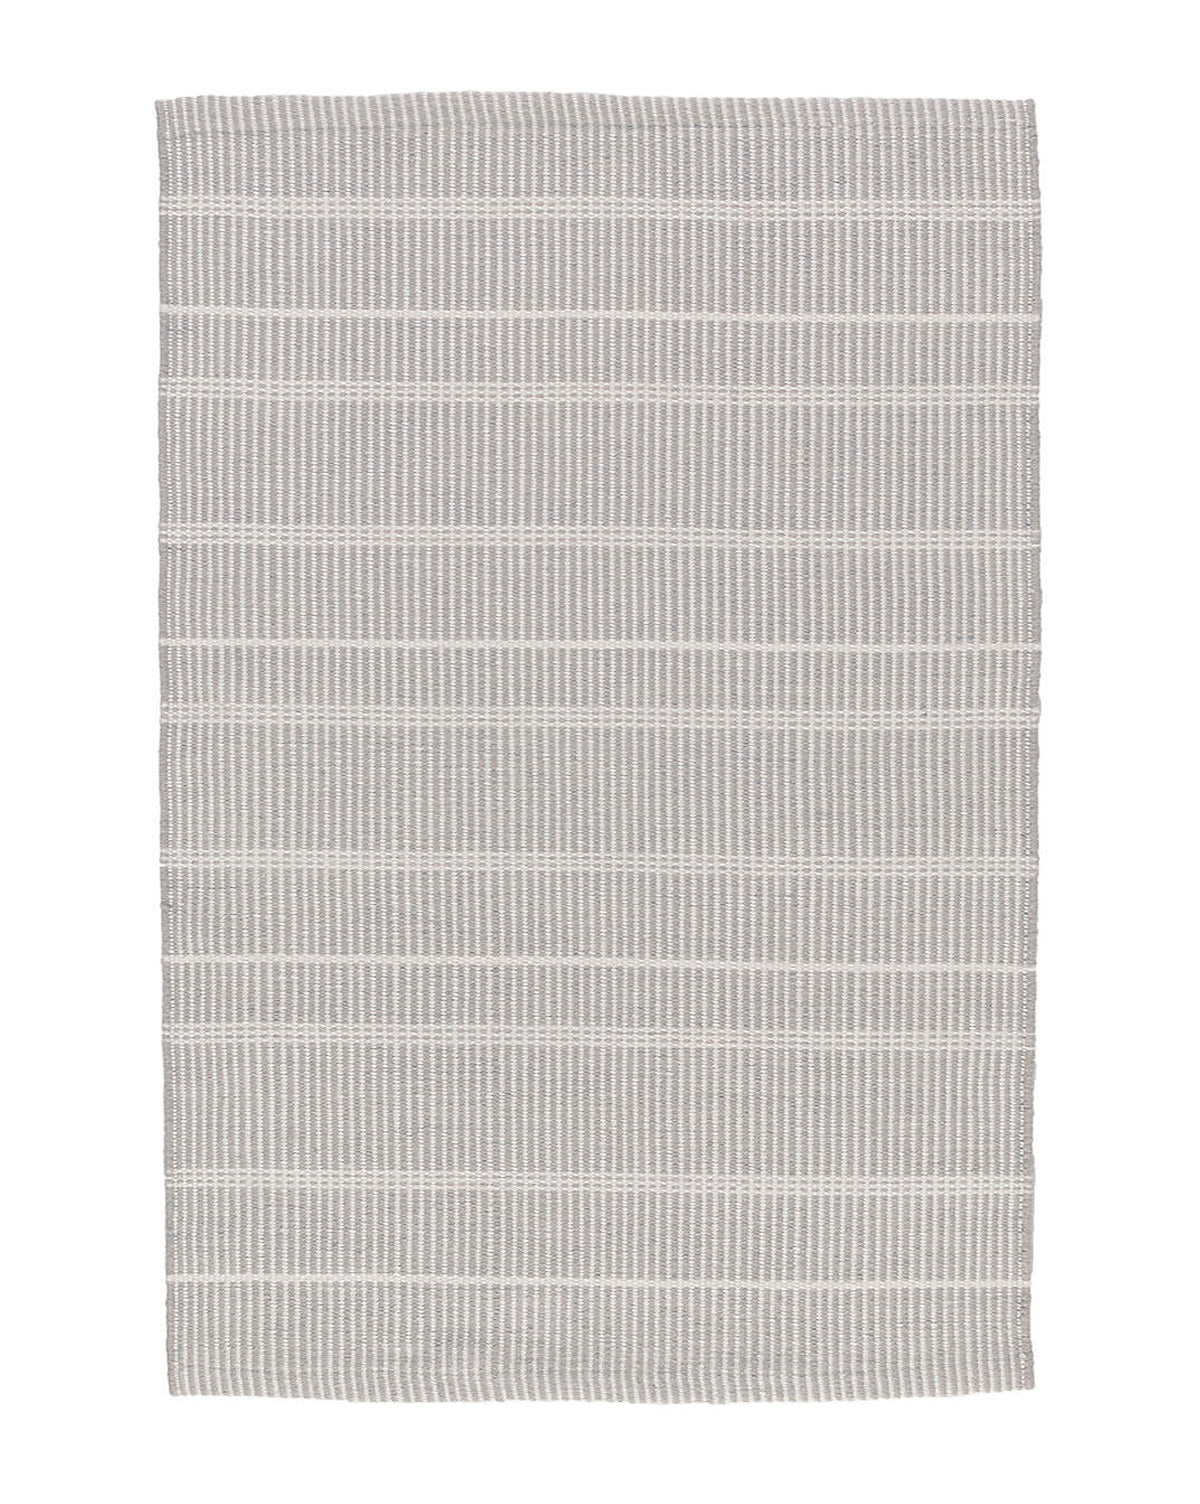 Samson Gray Indoor / Outdoor Rug